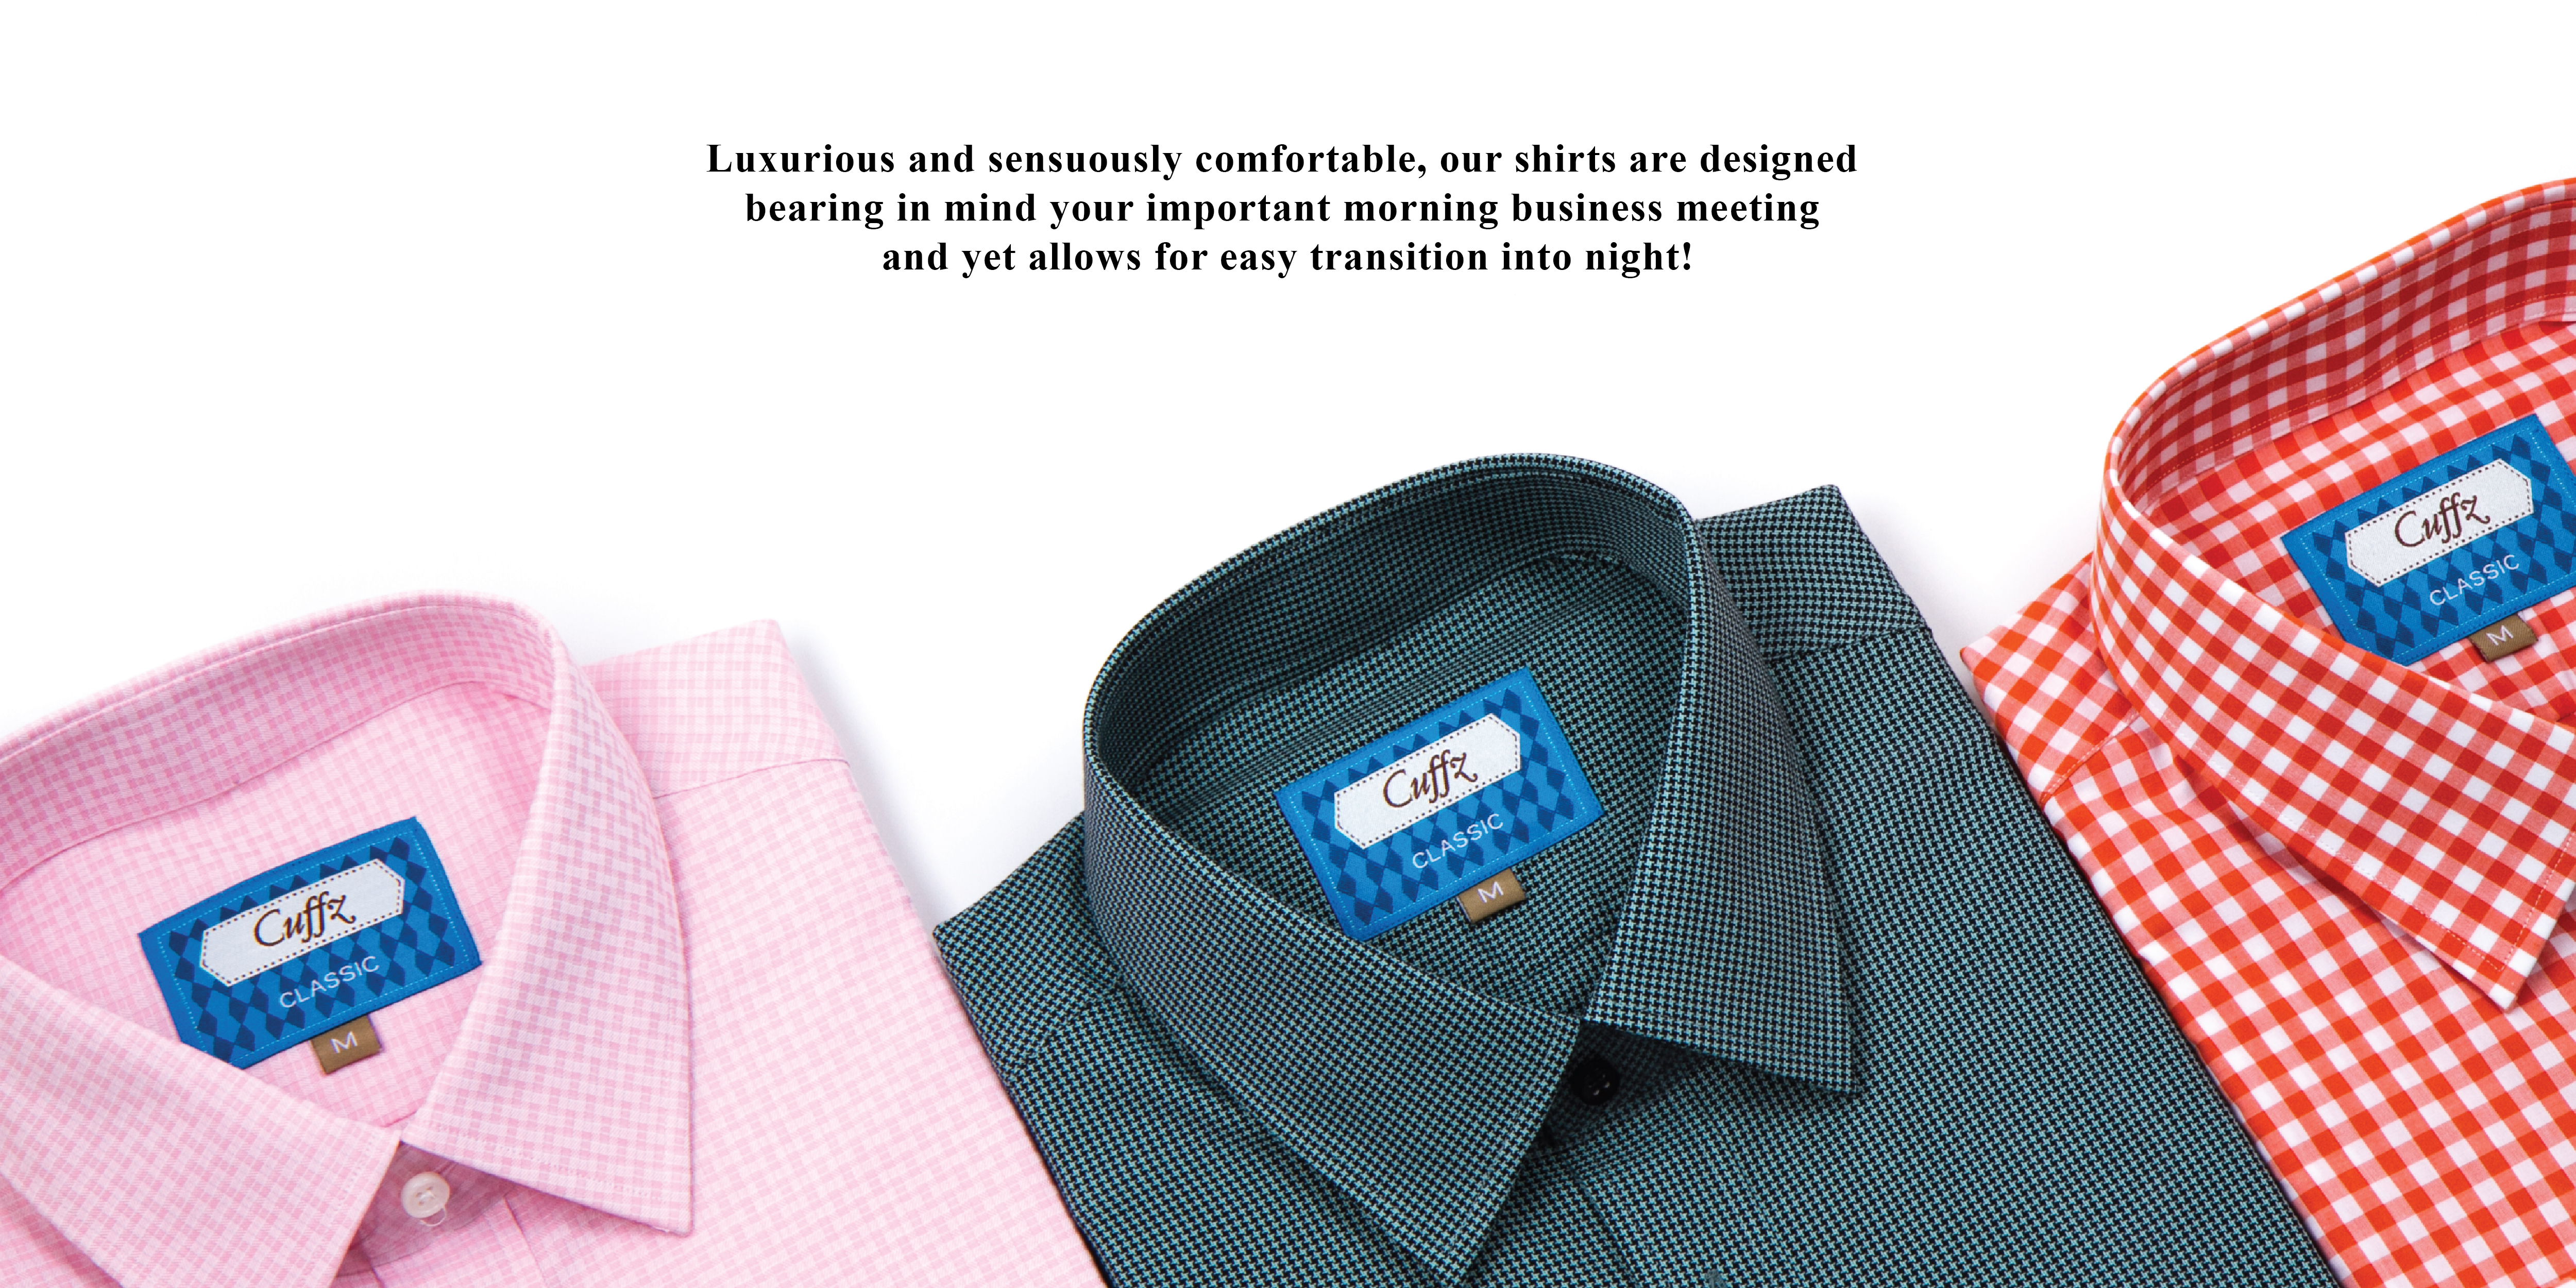 Premium cotton shirts